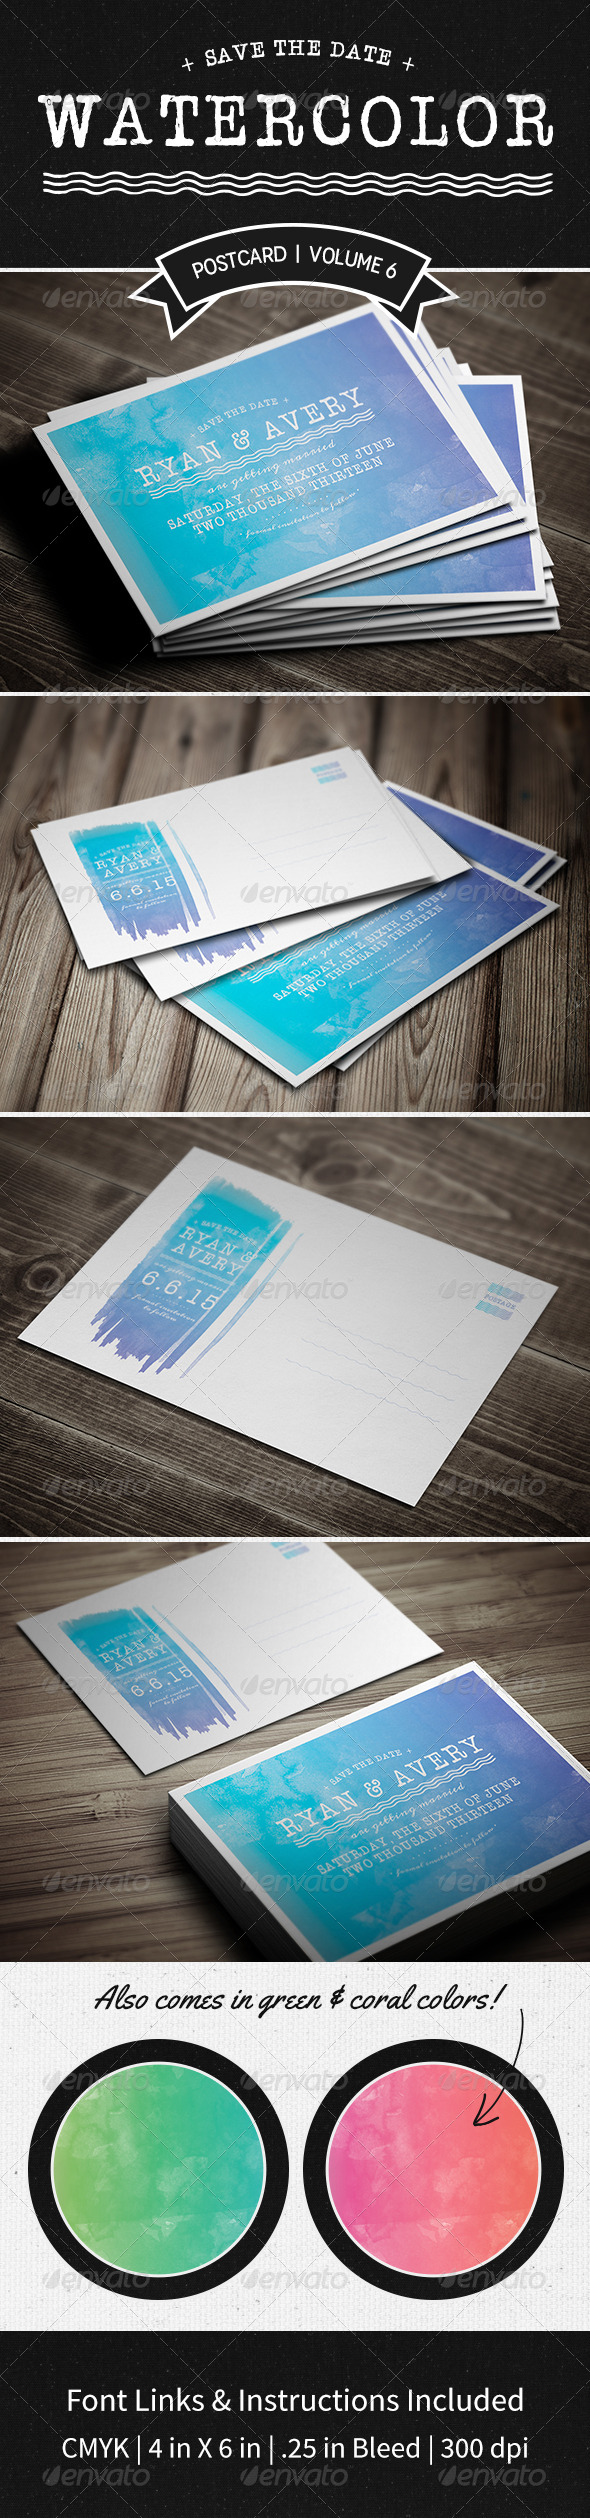 GraphicRiver Save The Date Postcard Volume 6 Watercolor 5377955